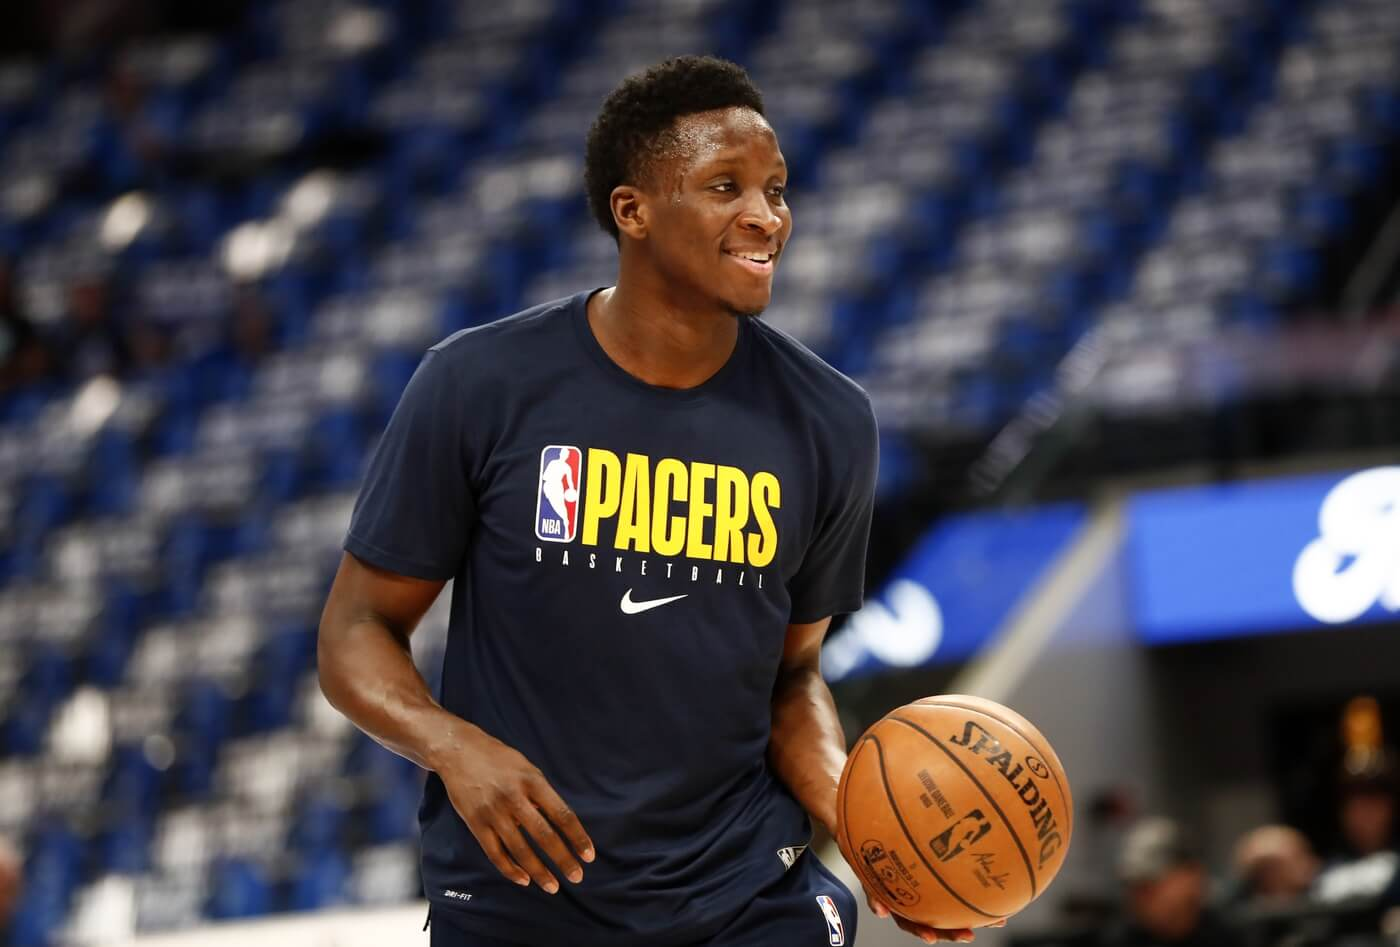 Mar 8, 2020; Dallas, Texas, USA; Indiana Pacers guard Victor Oladipo (4) warms up before the game against the Dallas Mavericks at American Airlines Center.